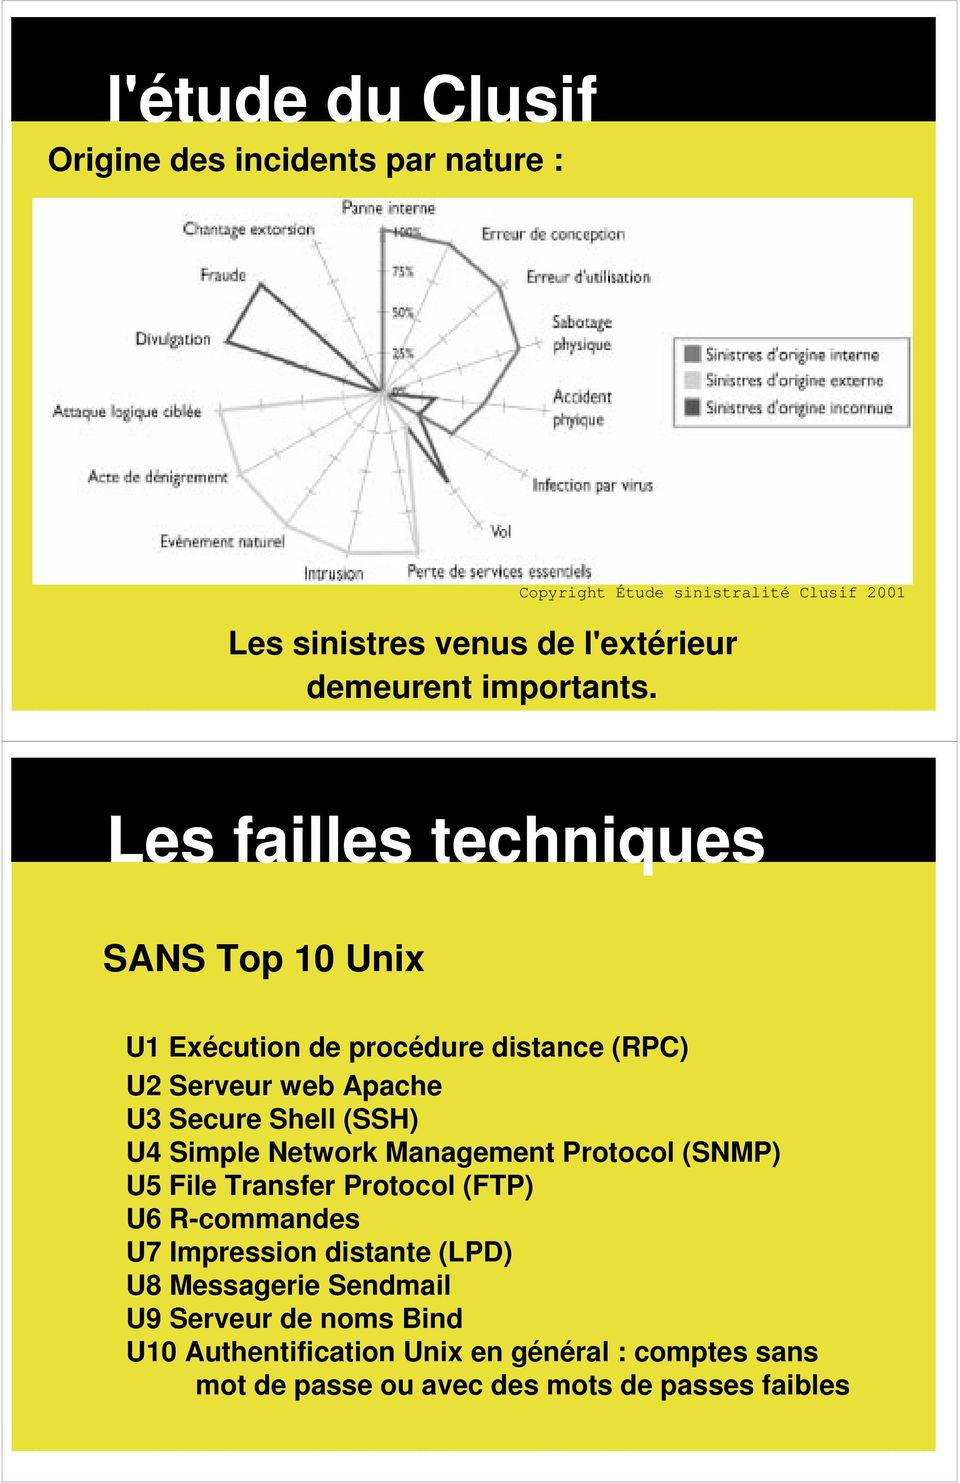 Les failles techniques SANS Top 10 Unix U1Exécutiondeprocéduredistance(RPC) U2 Serveur web Apache U3 Secure Shell (SSH) U4 Simple Network Management Protocol (SNMP) U5 File